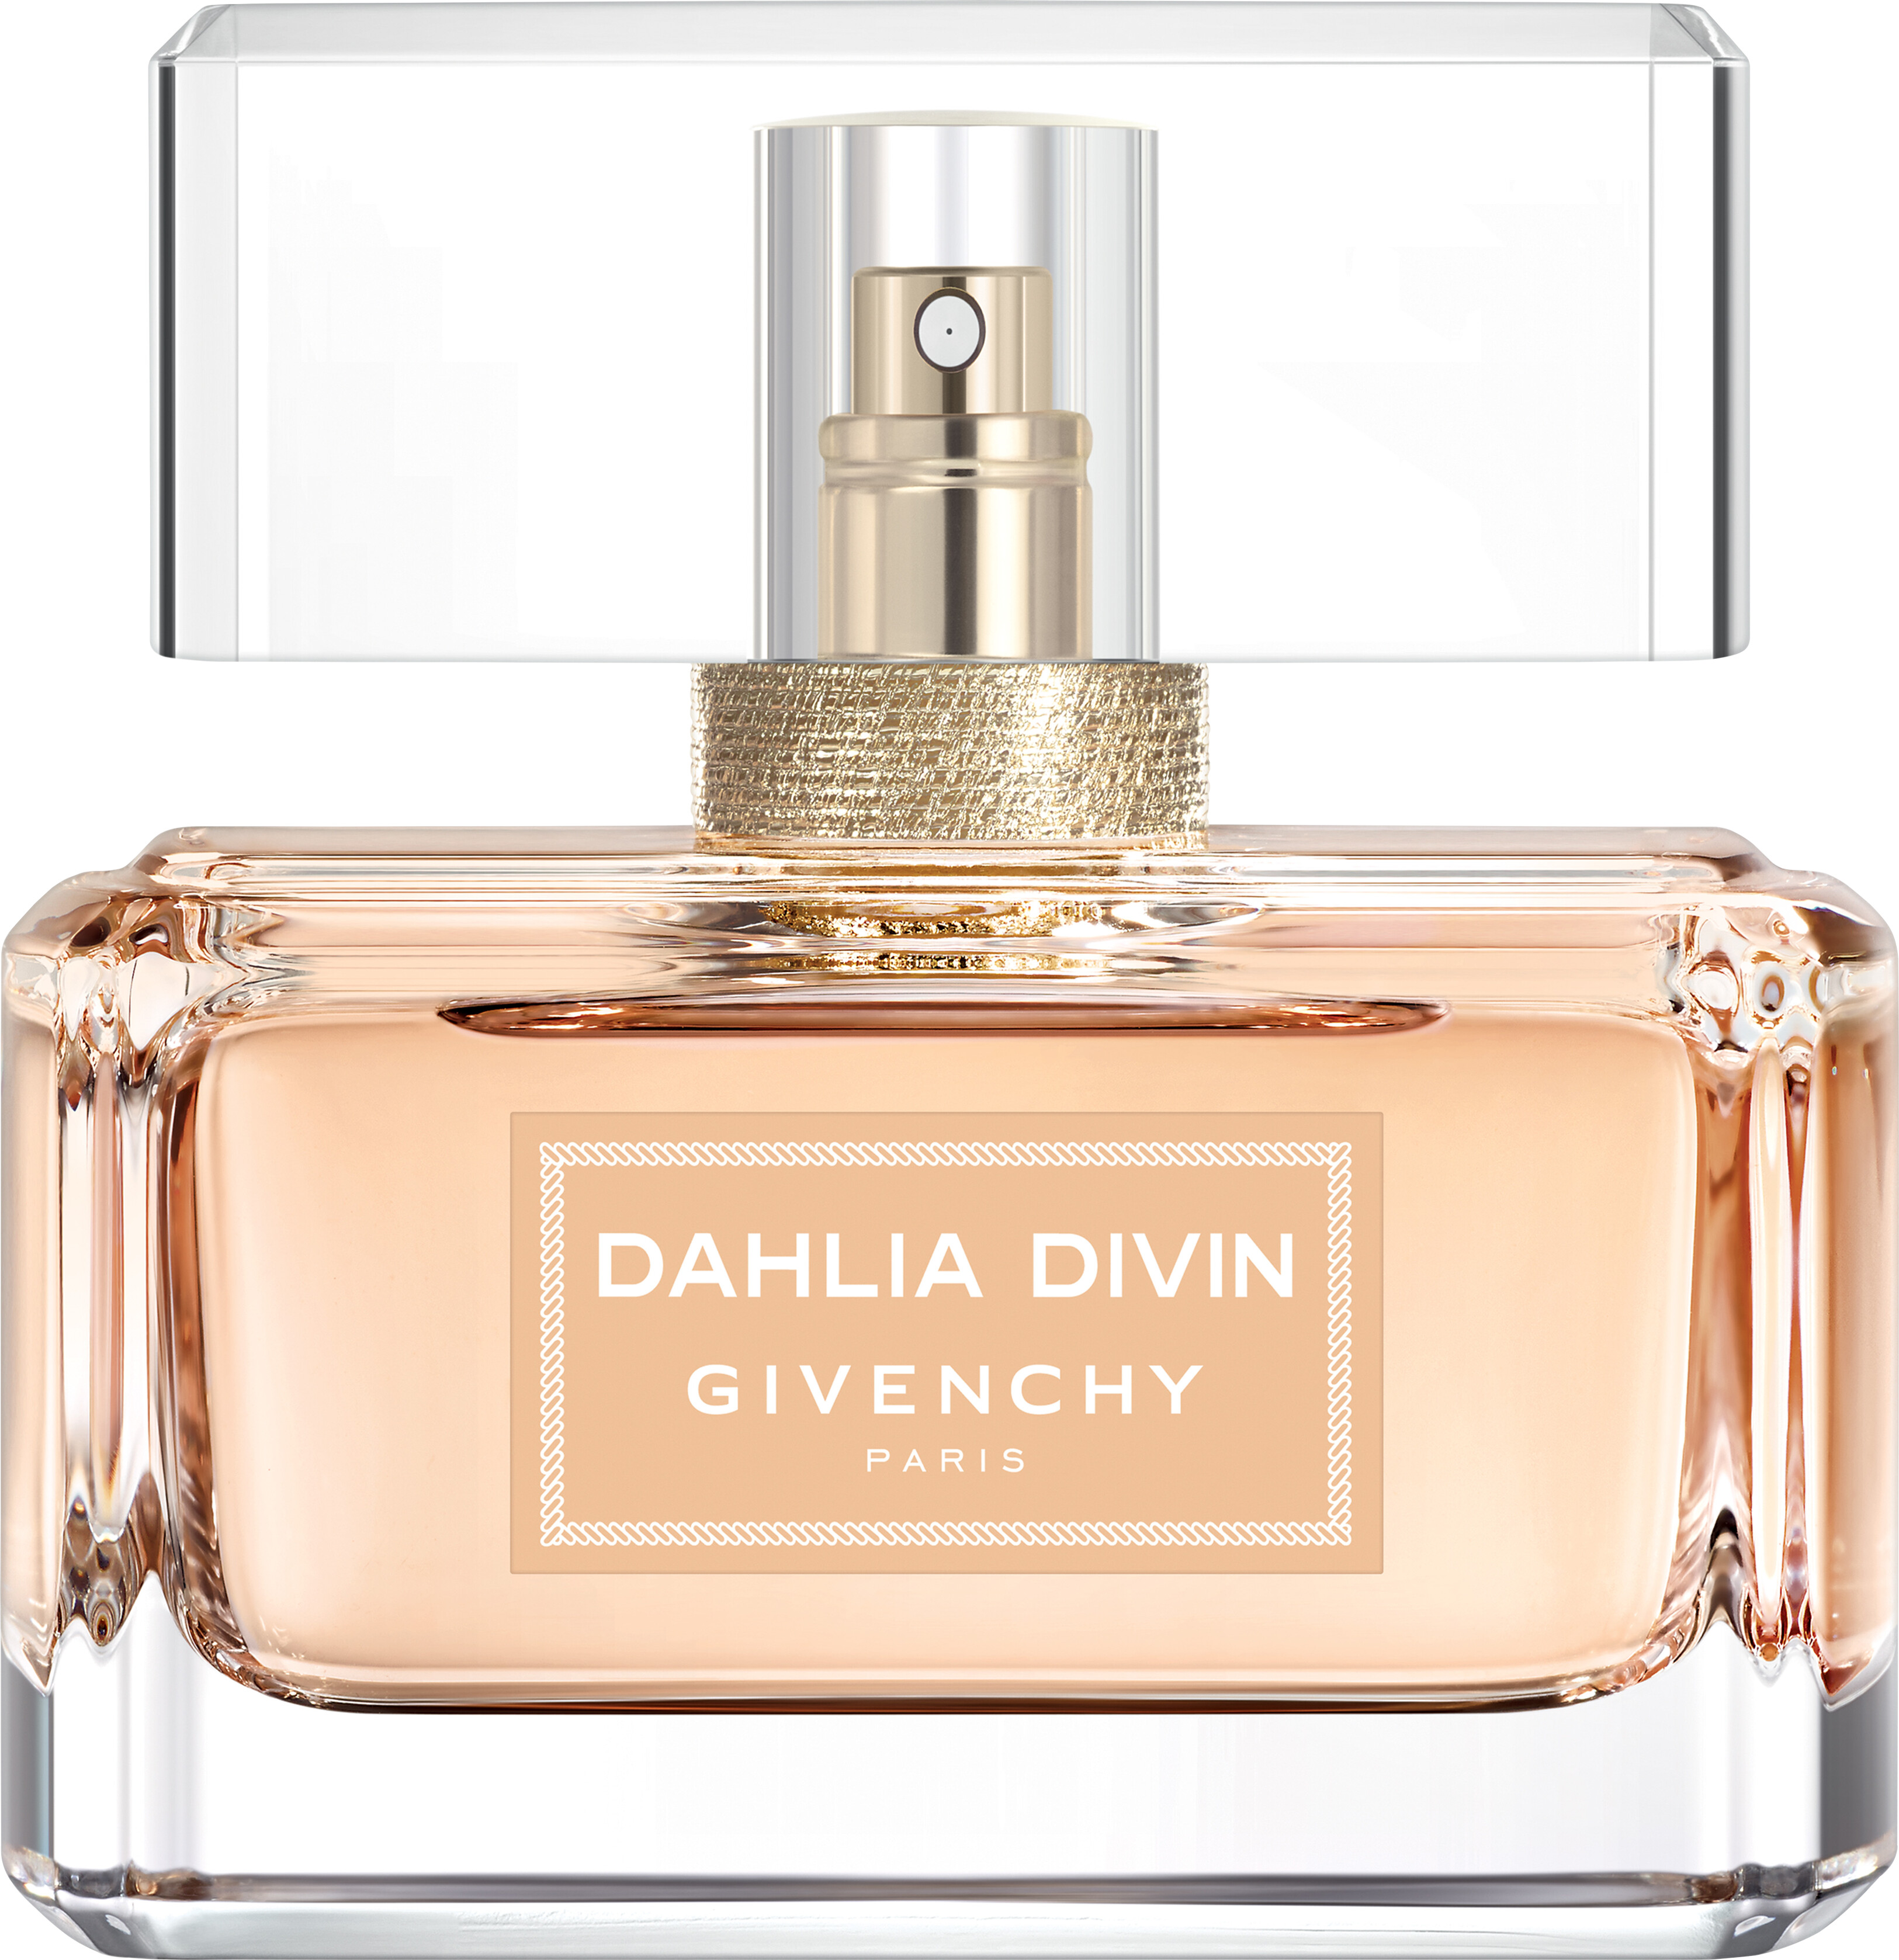 Perfume Givenchy Dahlia Divin: a pyramid, customer reviews